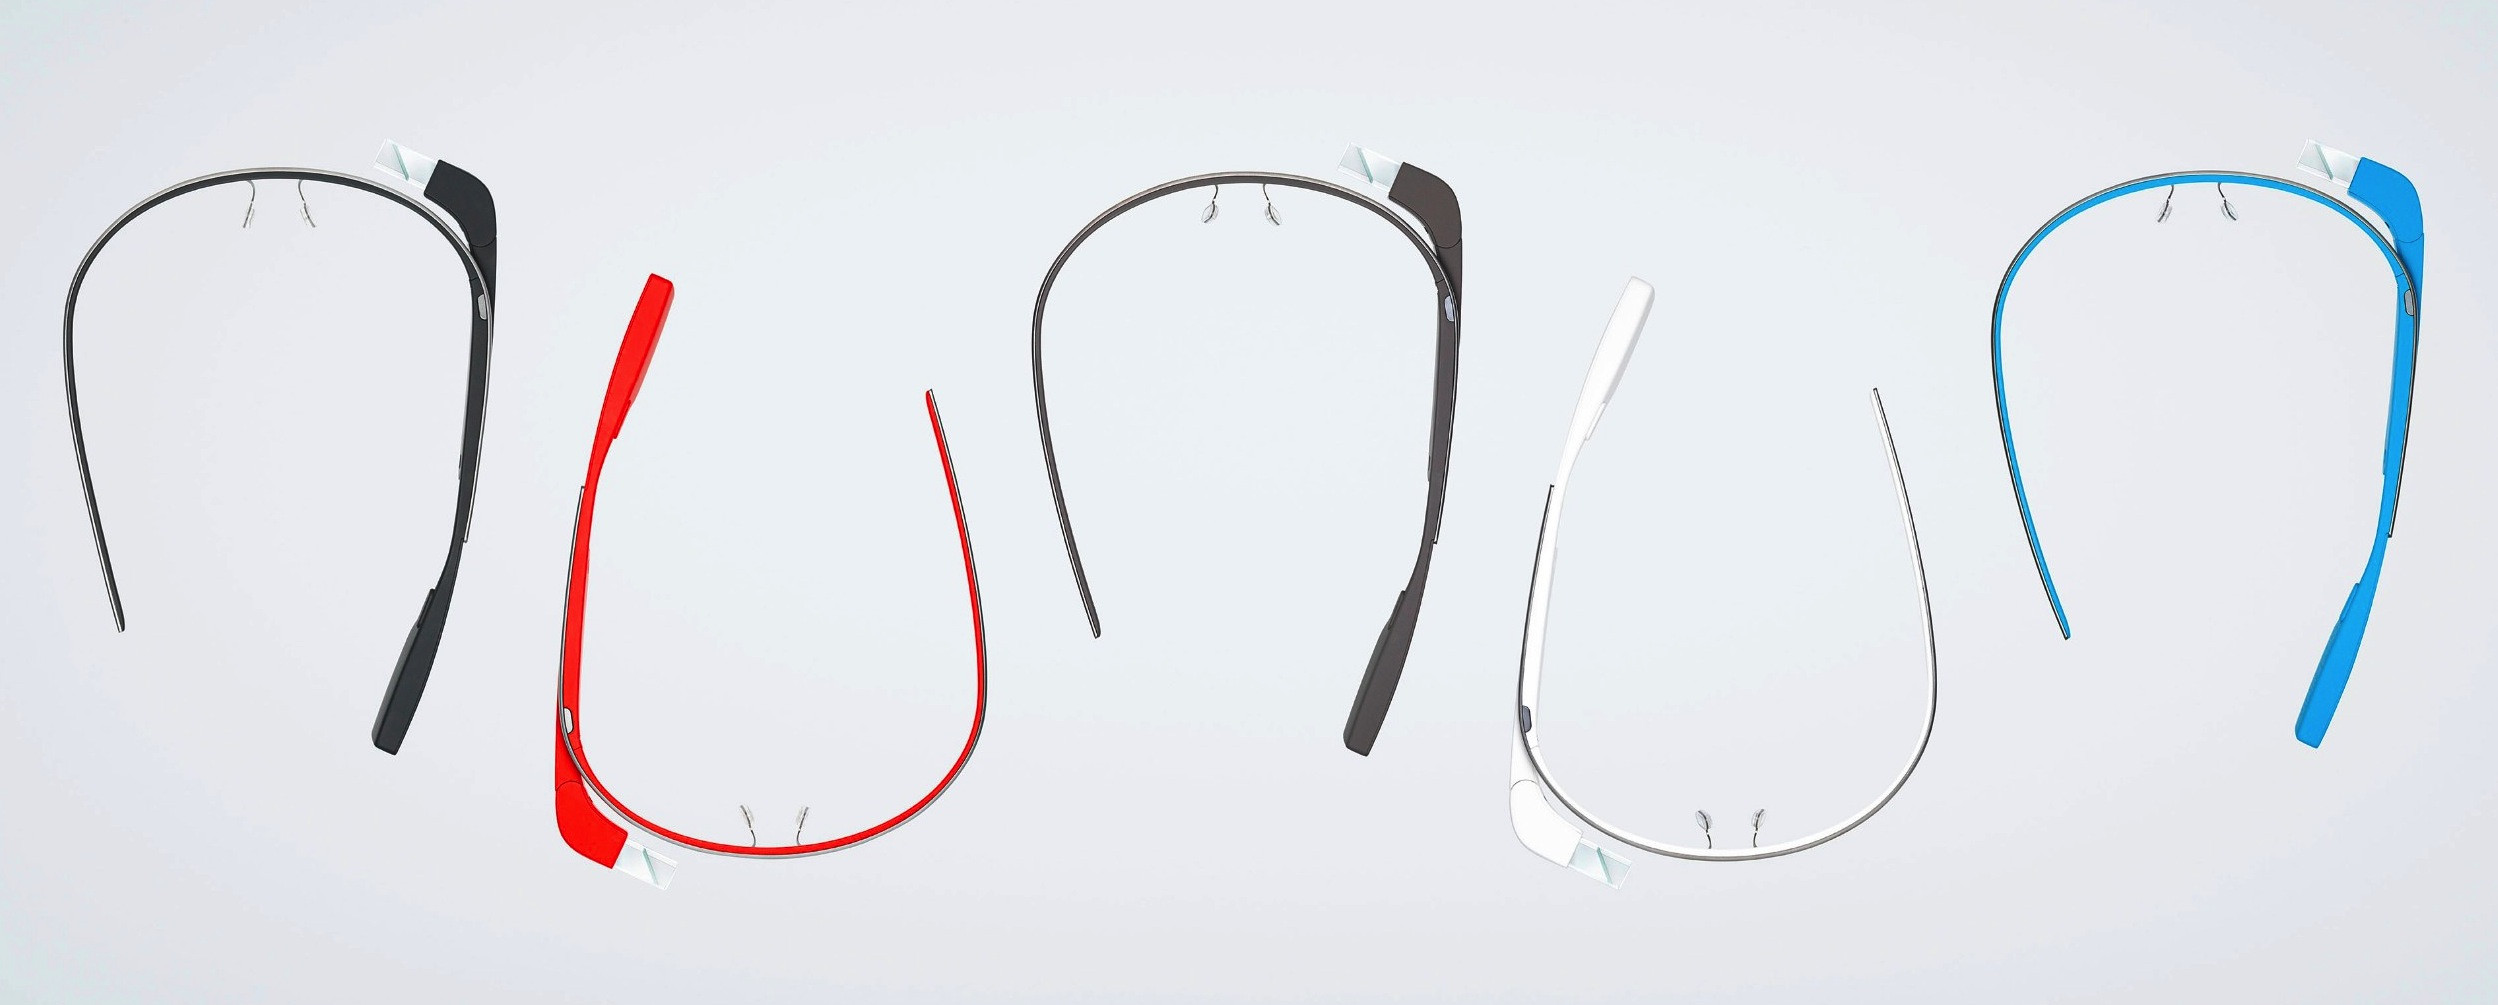 1361367622_google-releases-project-glass-video-capture-and-details-expands-pre-orders-4.jpg